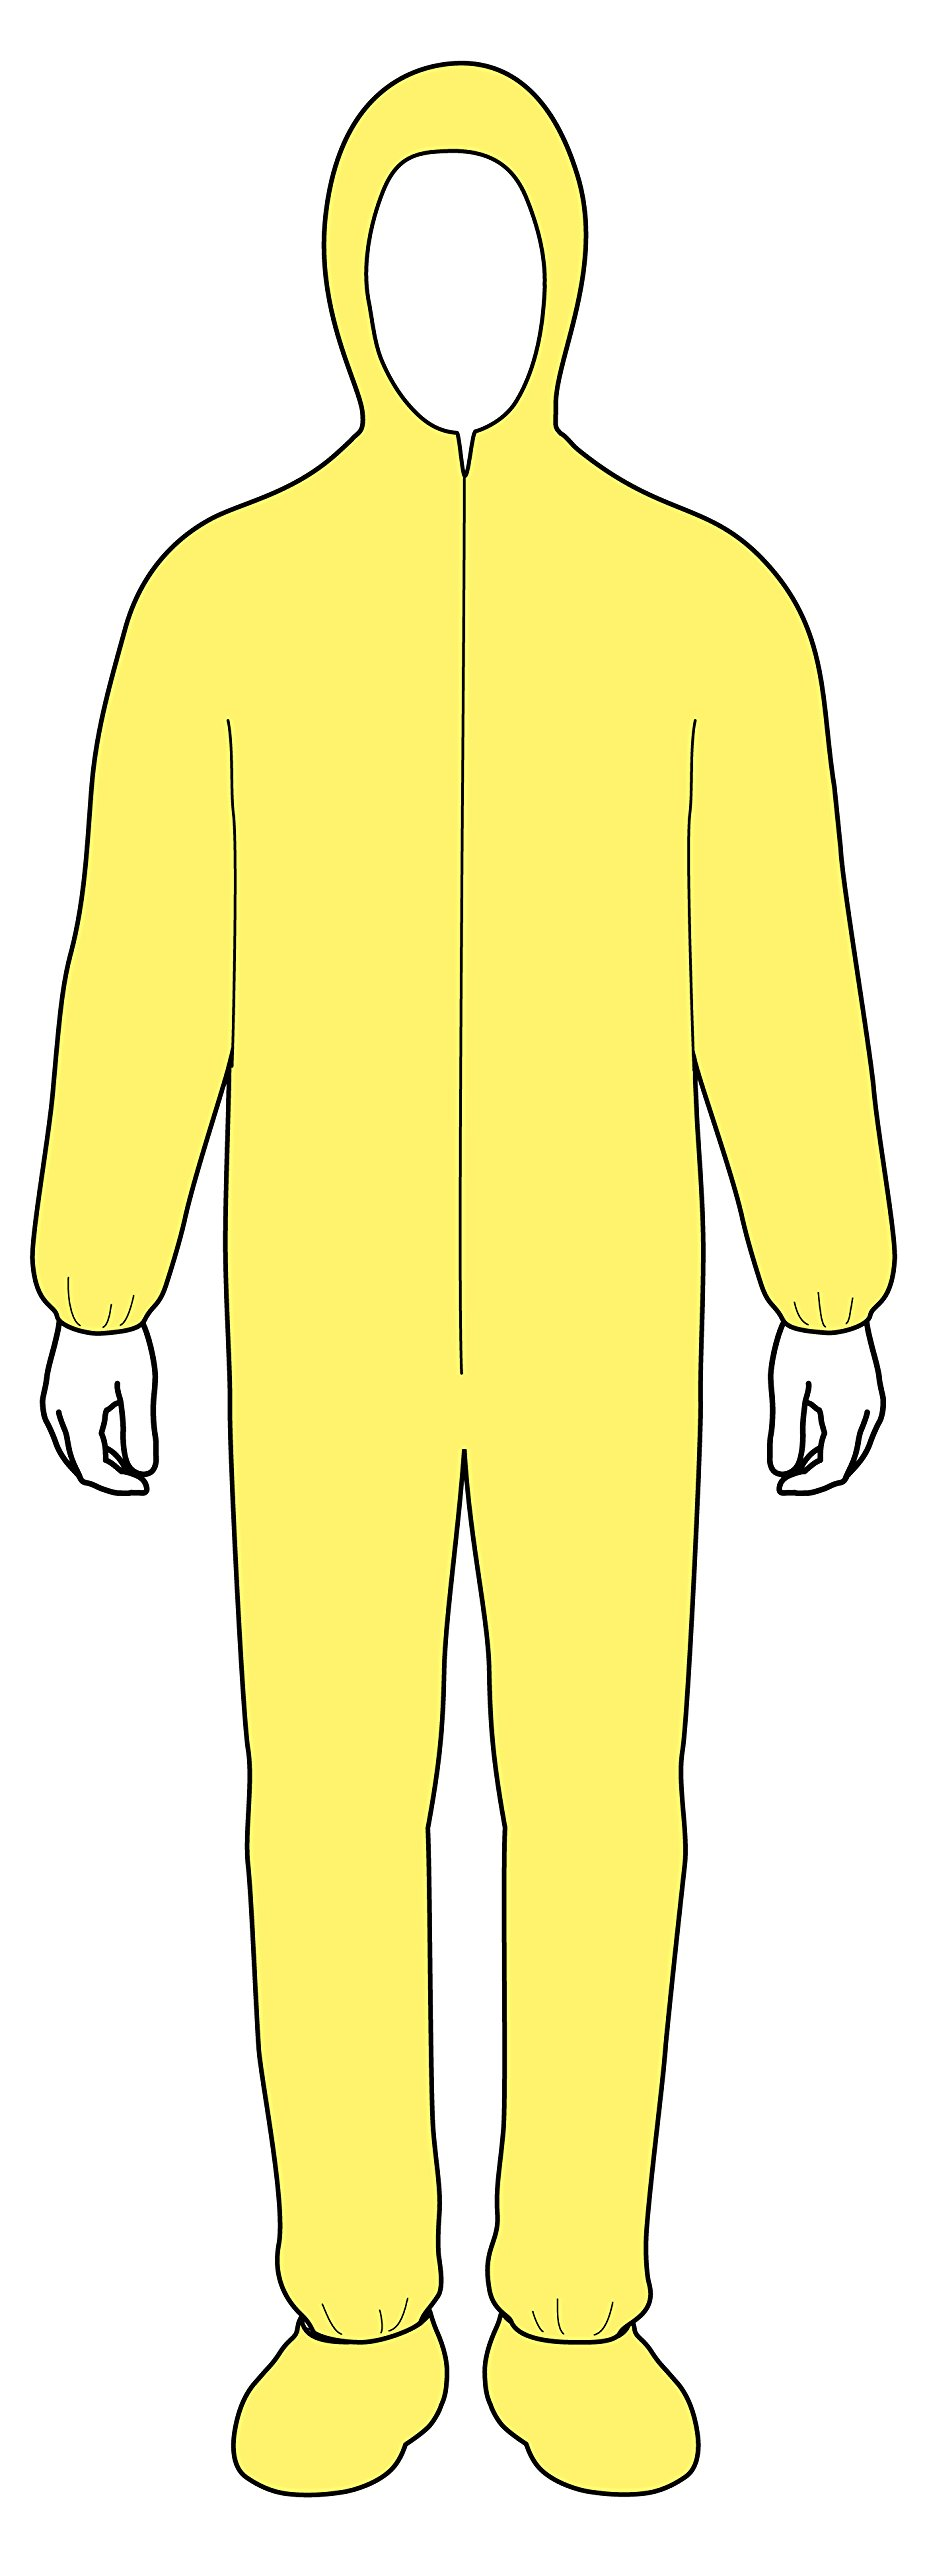 Lakeland ChemMax 1 Polyethylene/Polypropylene Serged Seam Disposable Coverall with Hood and Boots, Elastic Cuff, 2X-Large, Yellow (Case of 25) by Lakeland Industries Inc (Image #3)